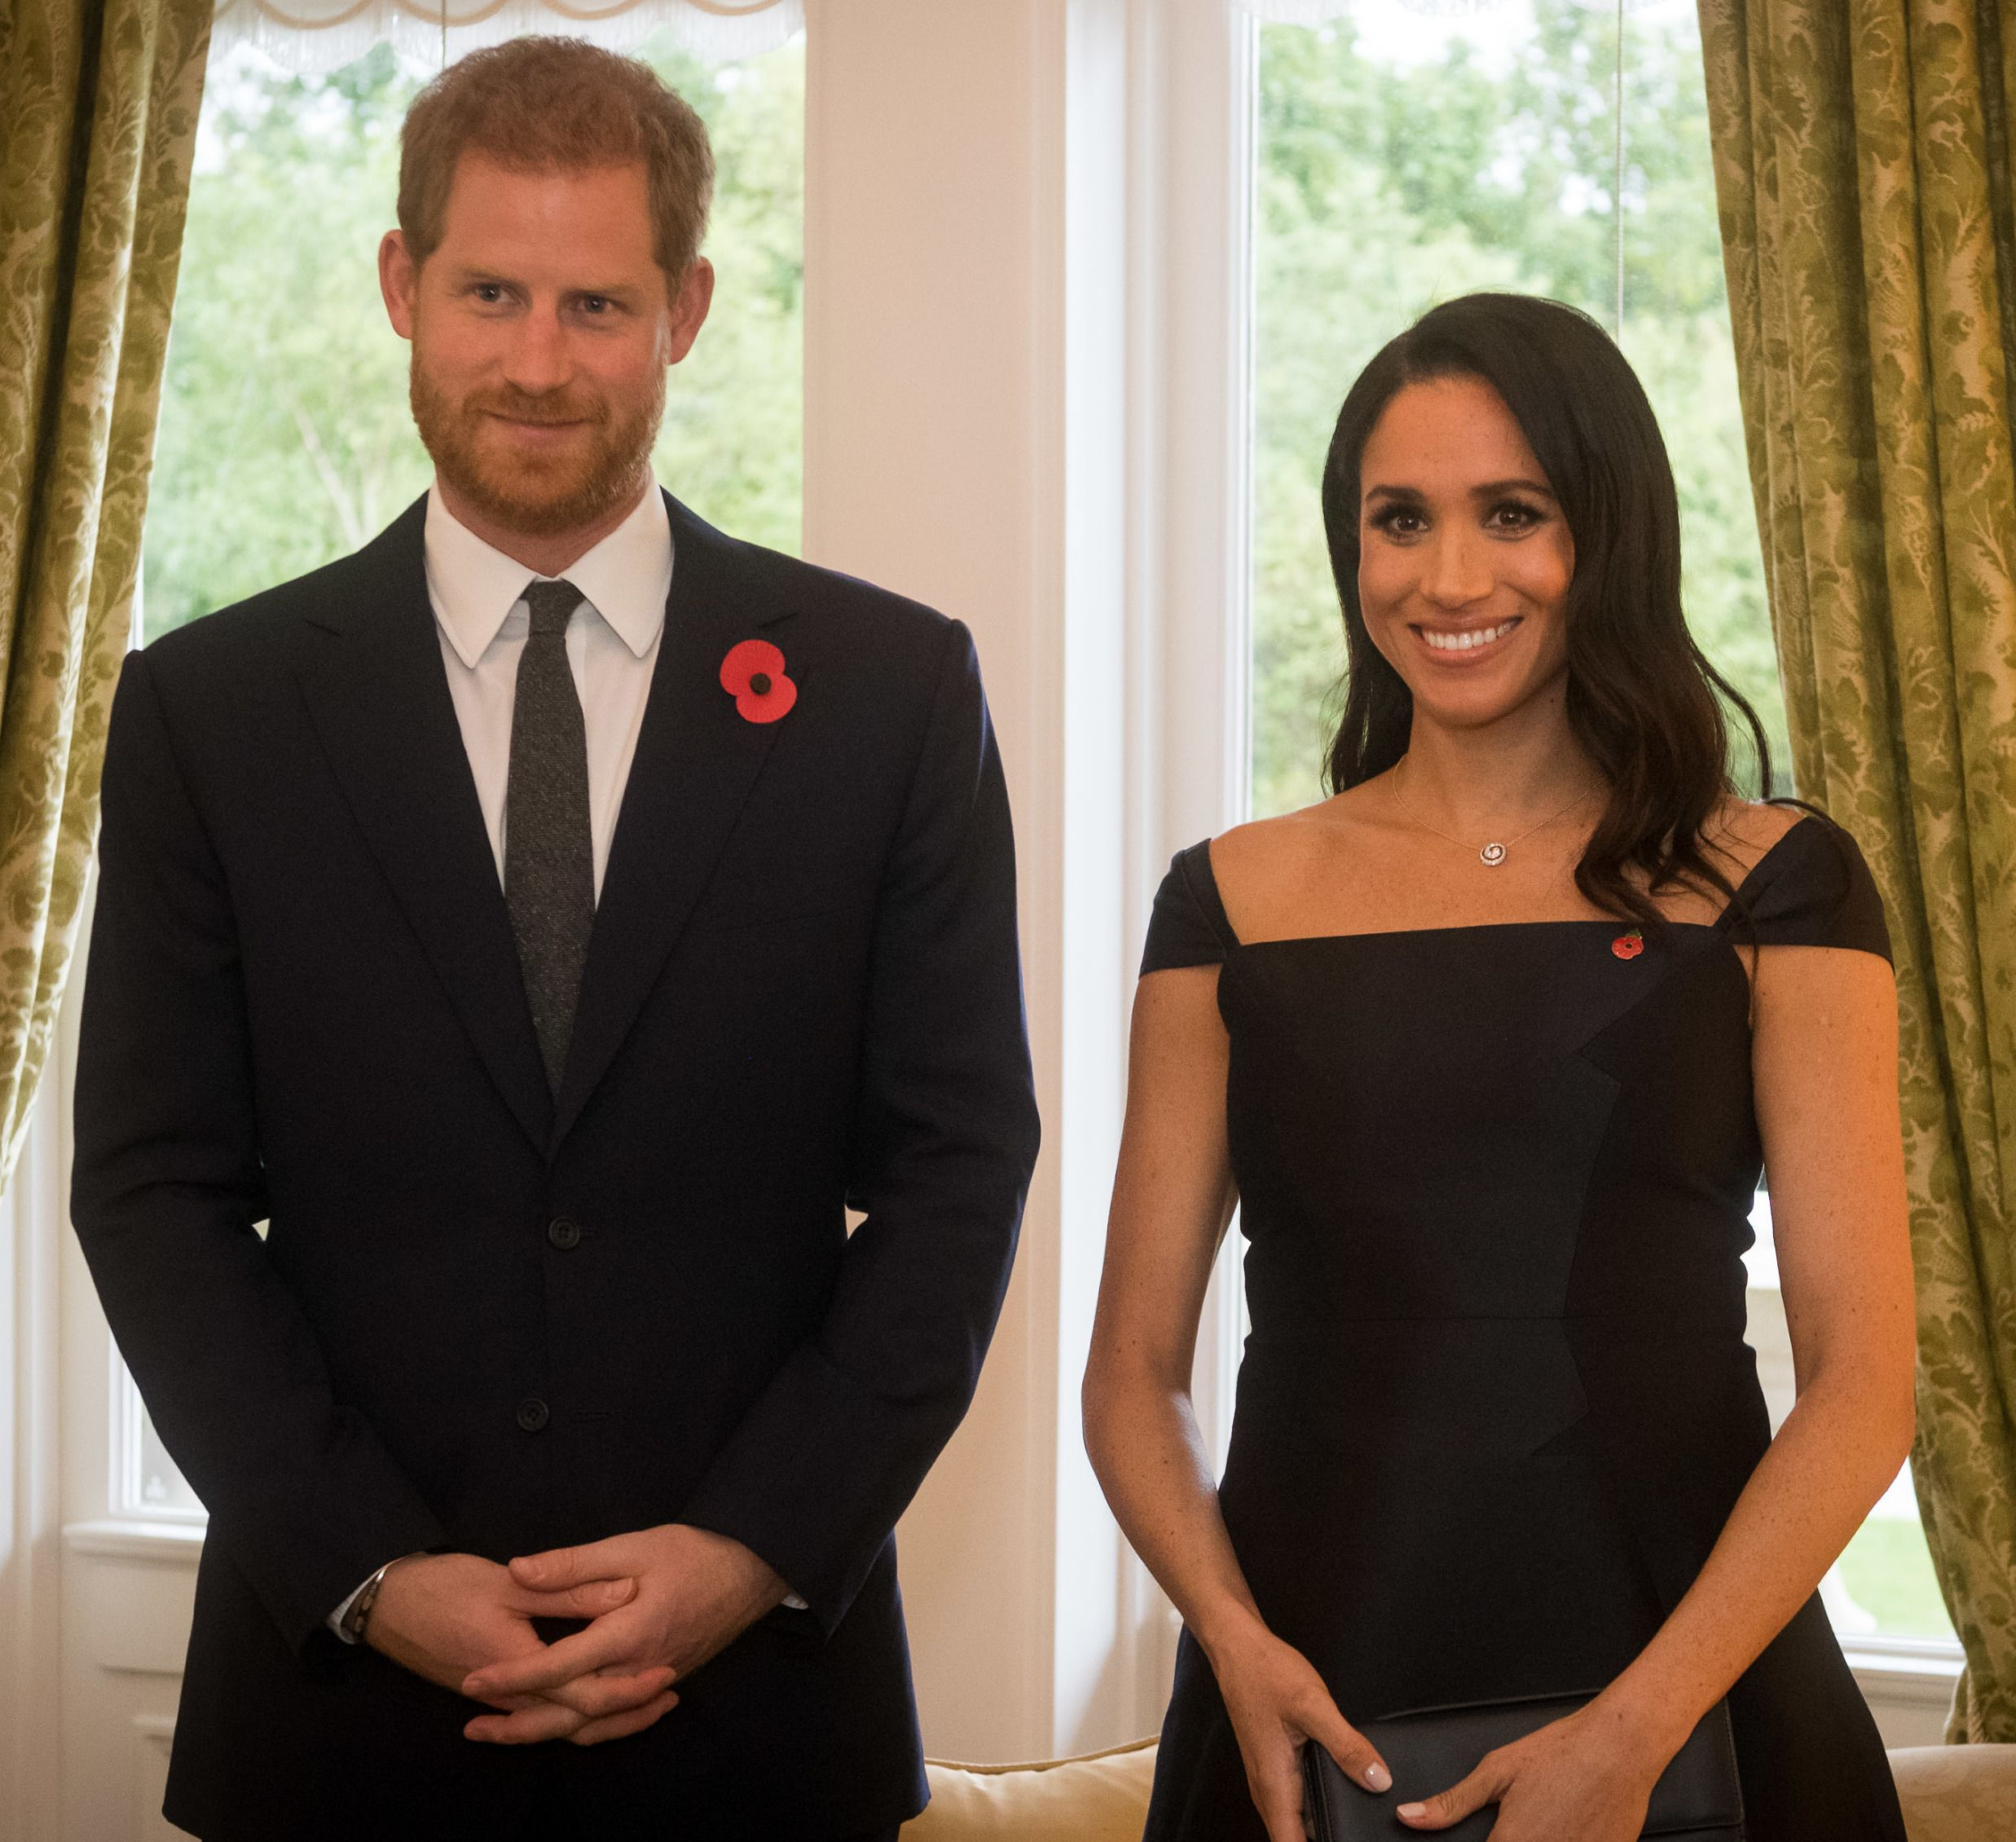 Prince Harry and Meghan Markle in black formal wear